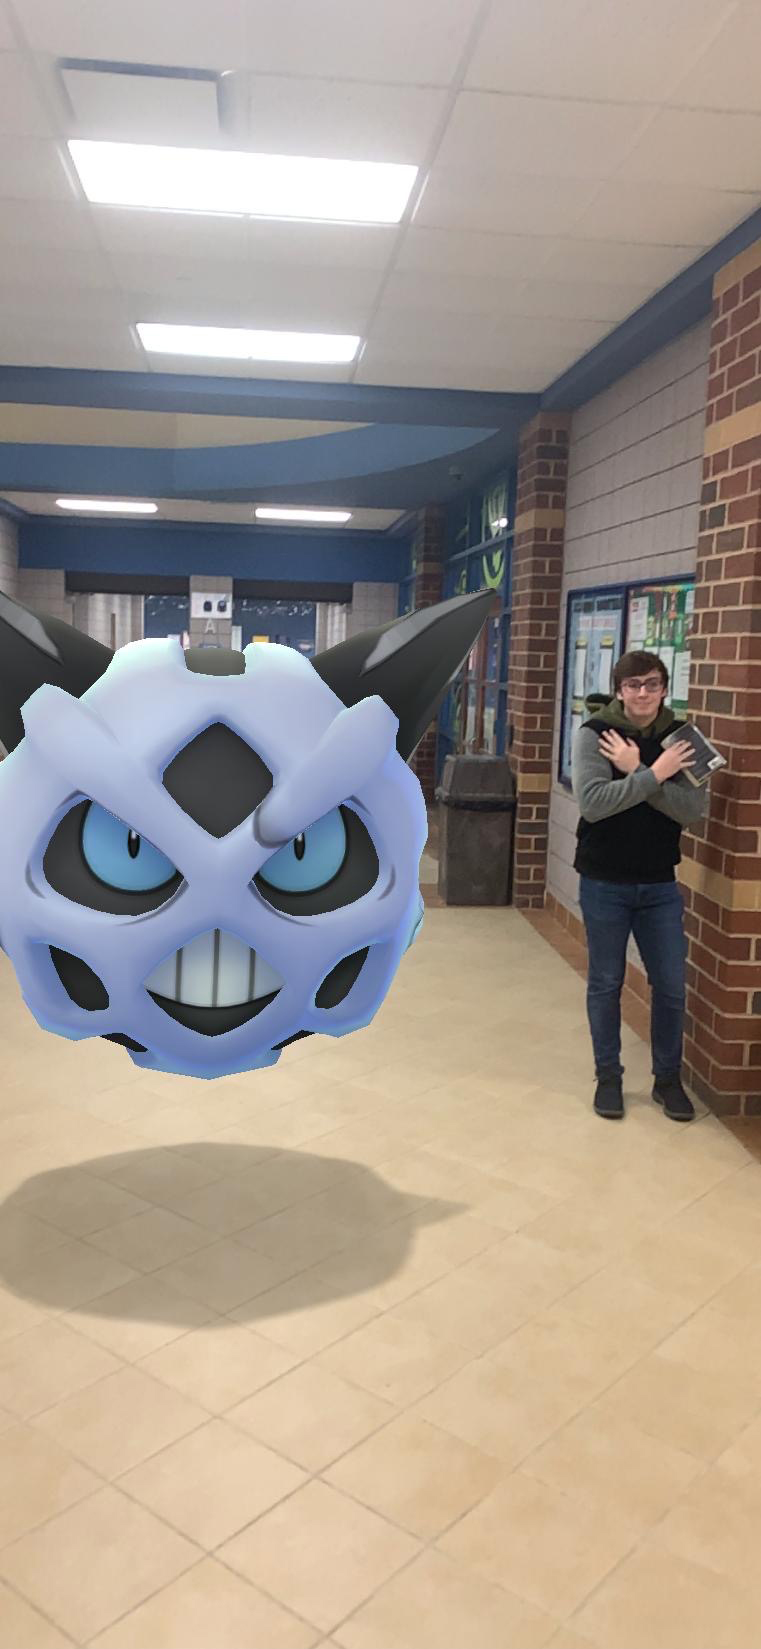 Luke Haas shivering in the hallways because of Glalie's freezing cold presence!